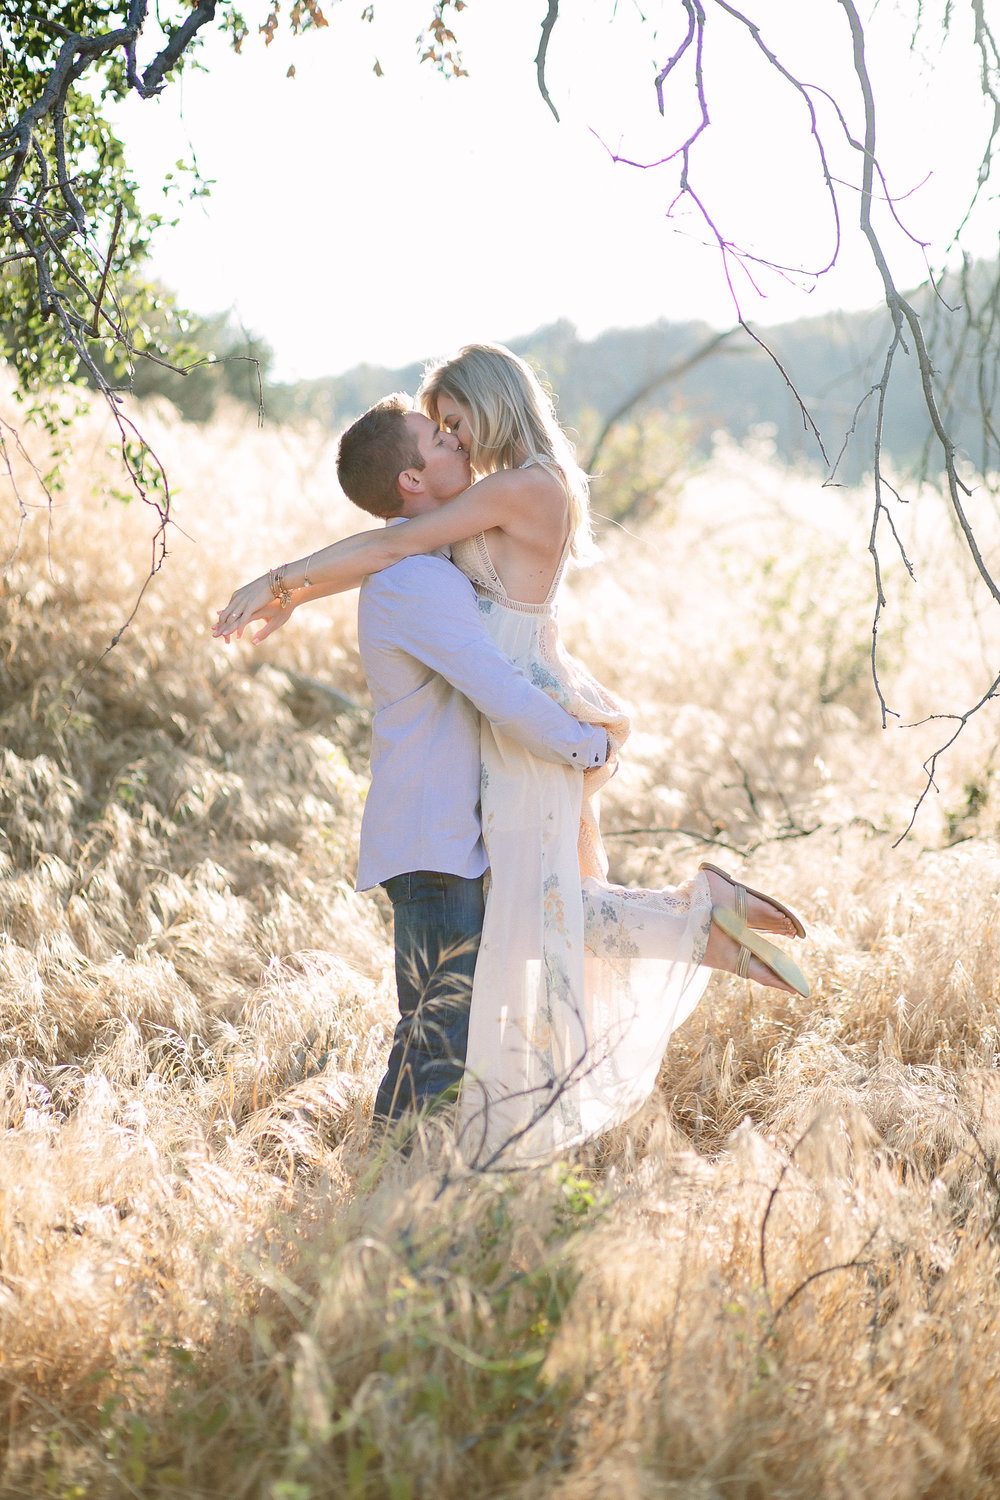 Santa Clarita Outdoor Engagement Photo Shoot